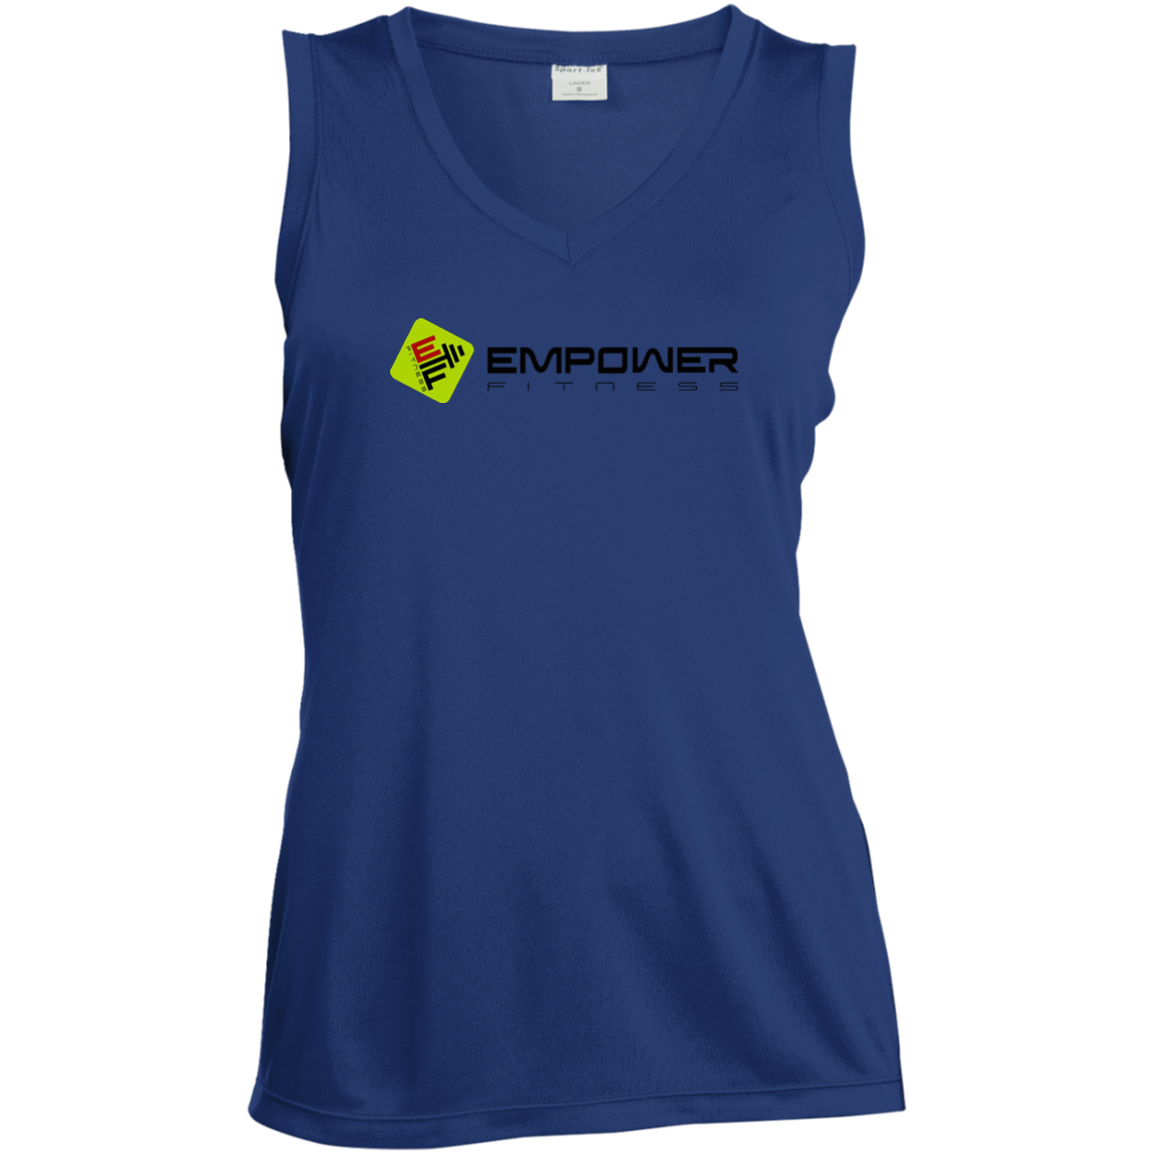 #empowerfamily Sport-Tek Ladies' Sleeveless Moisture Absorbing V-Neck